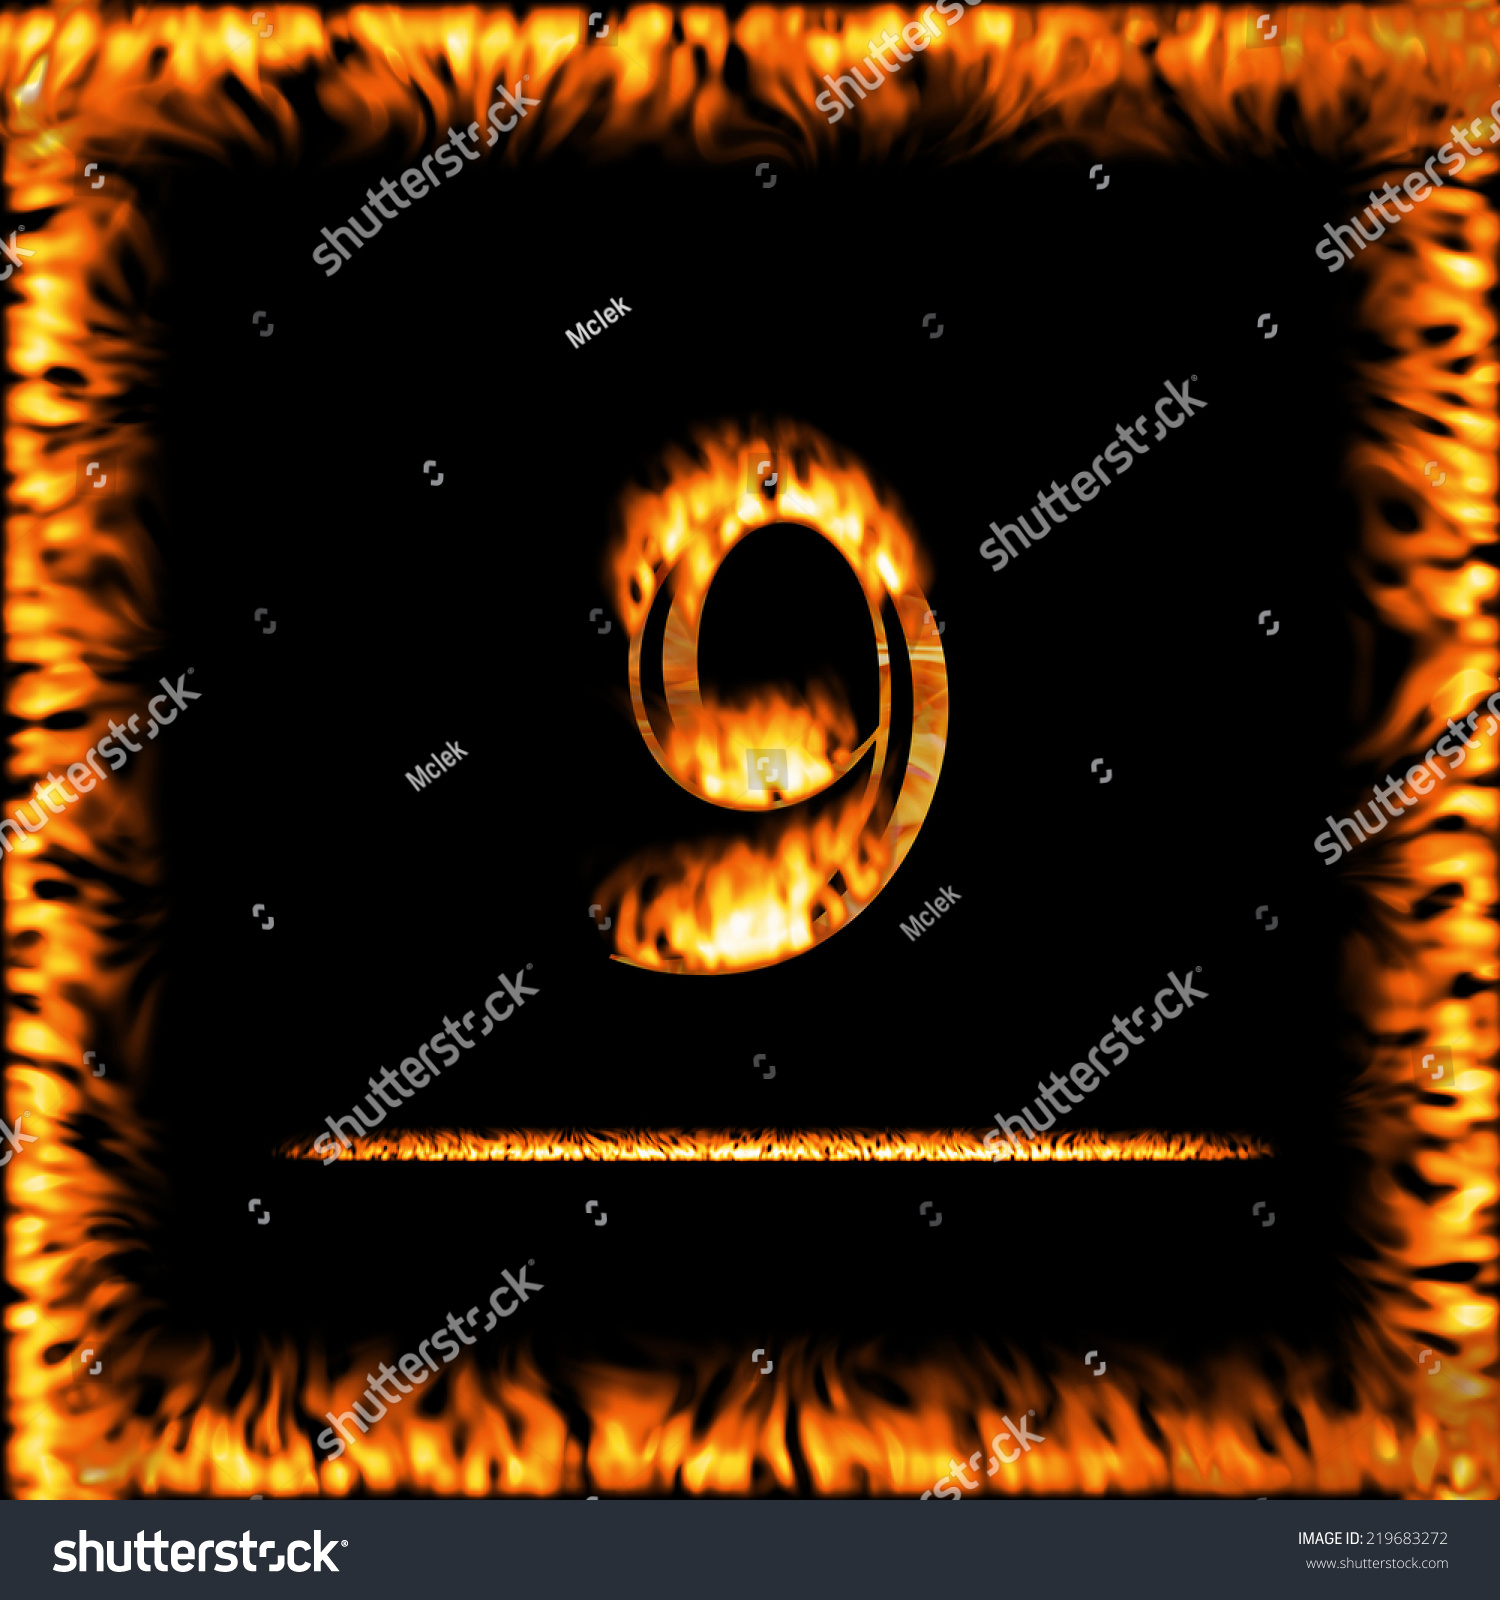 9 nine fire digit letter symbol stock illustration 219683272 9 nine fire digit letter symbol isolated on a black background look for more biocorpaavc Choice Image